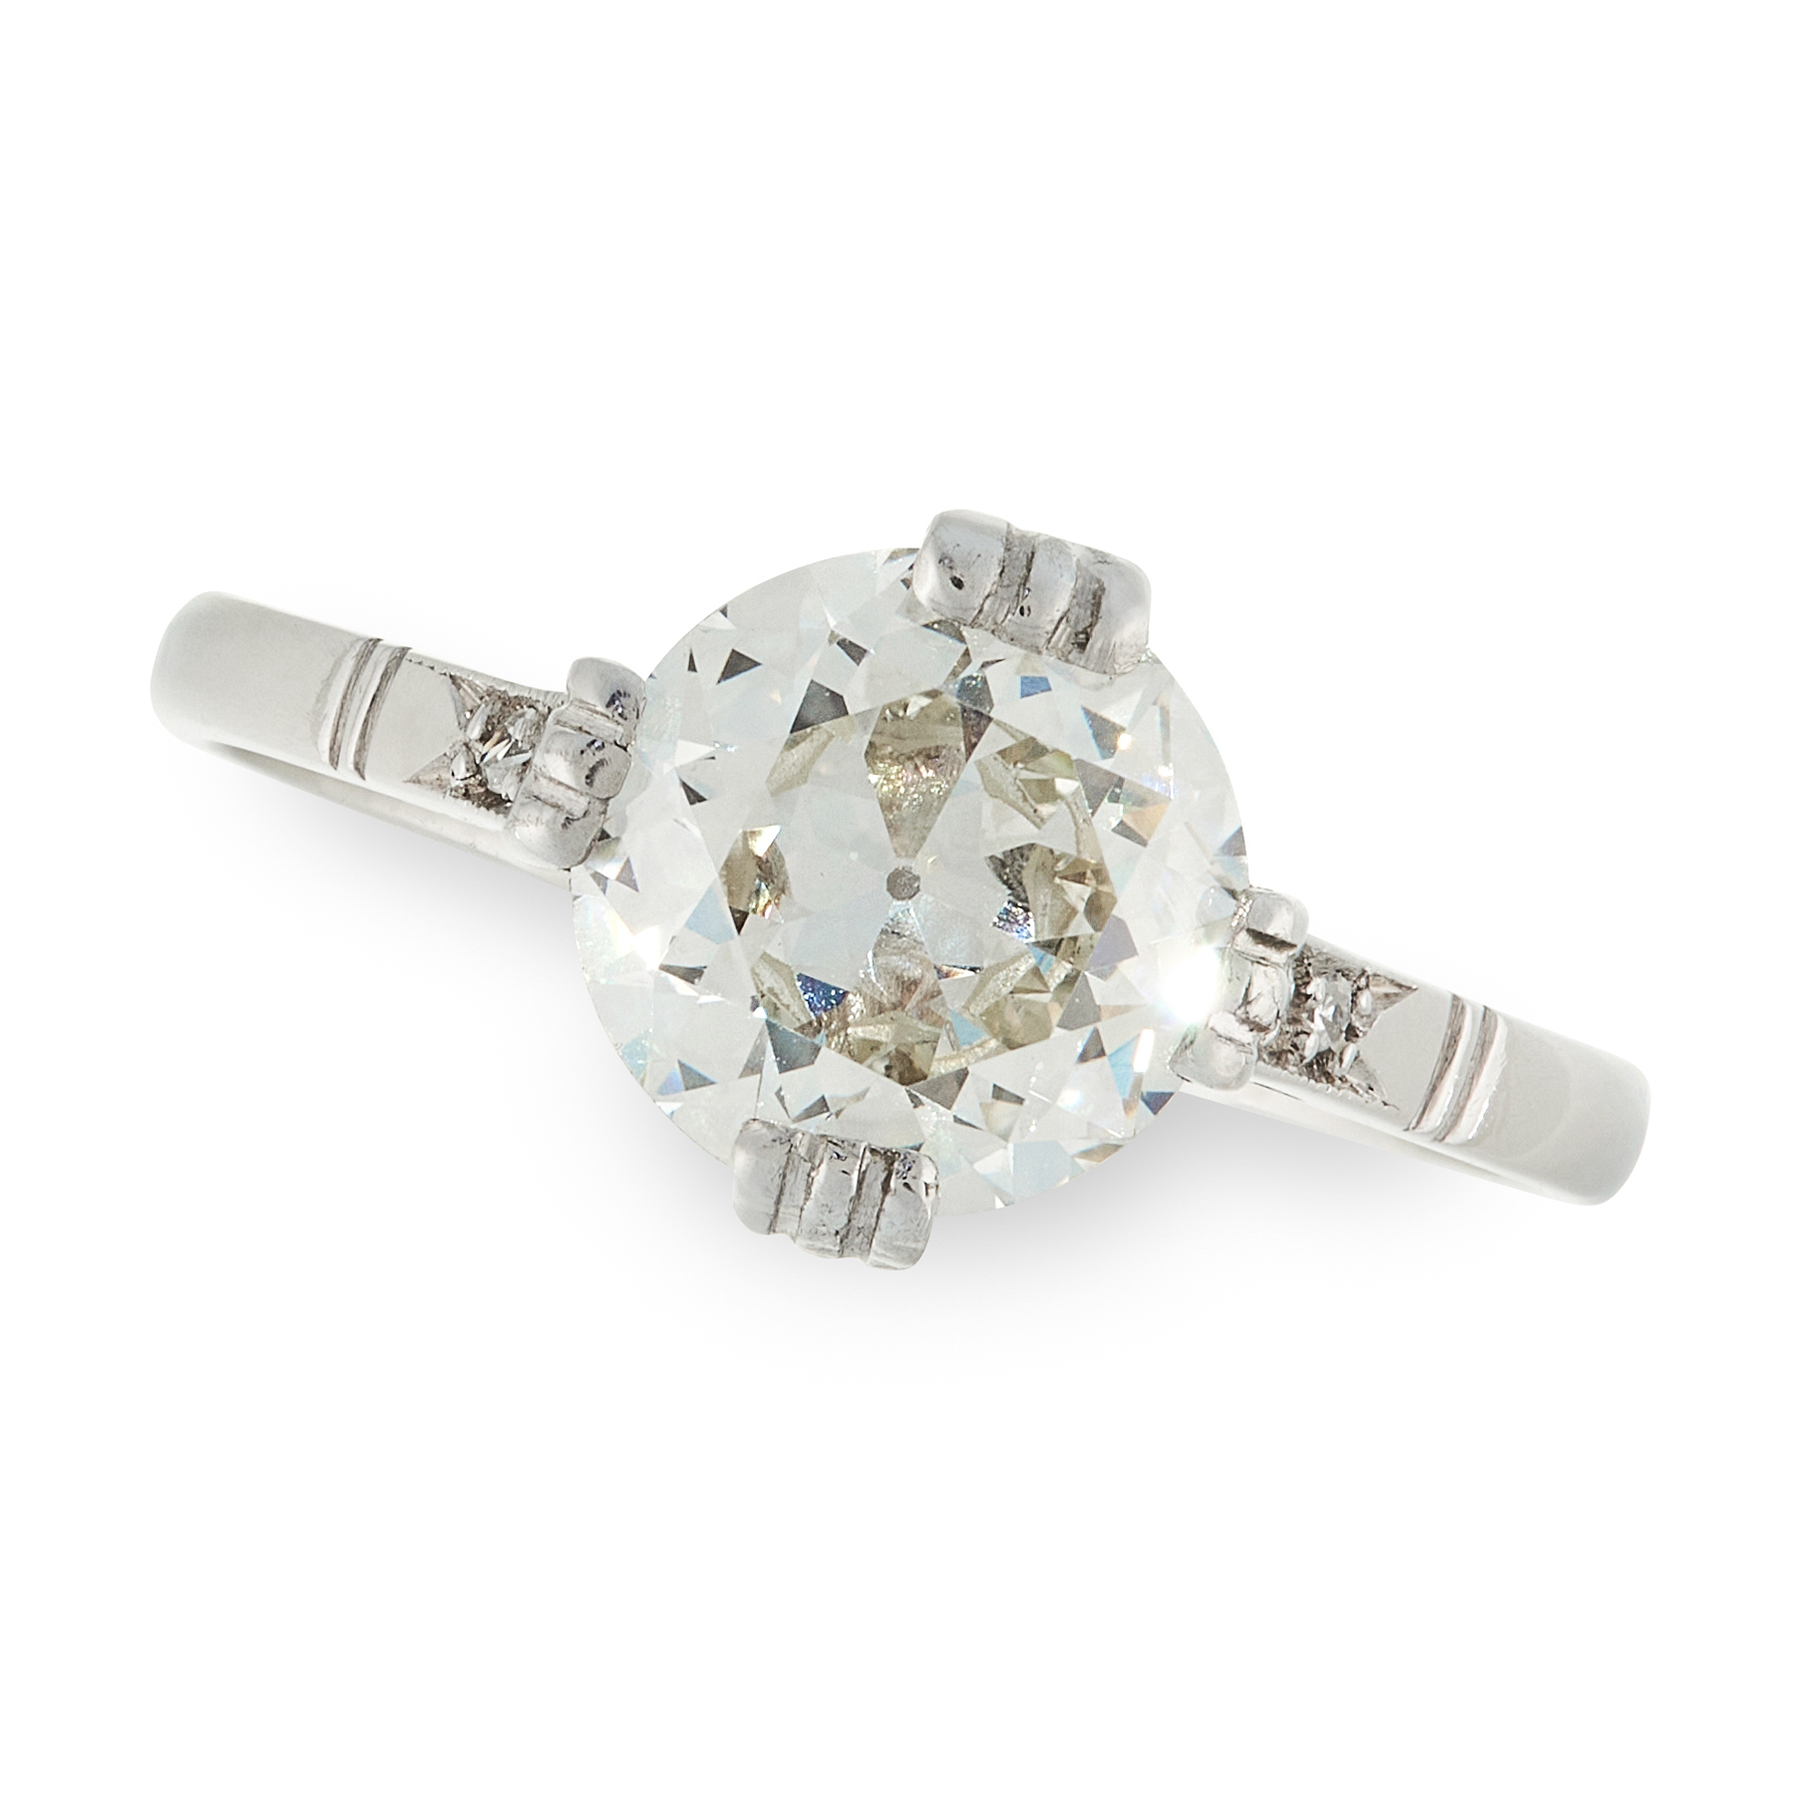 A DIAMOND SOLITAIRE RING set with an old European cut diamond of 1.24 carats, with pairs of single